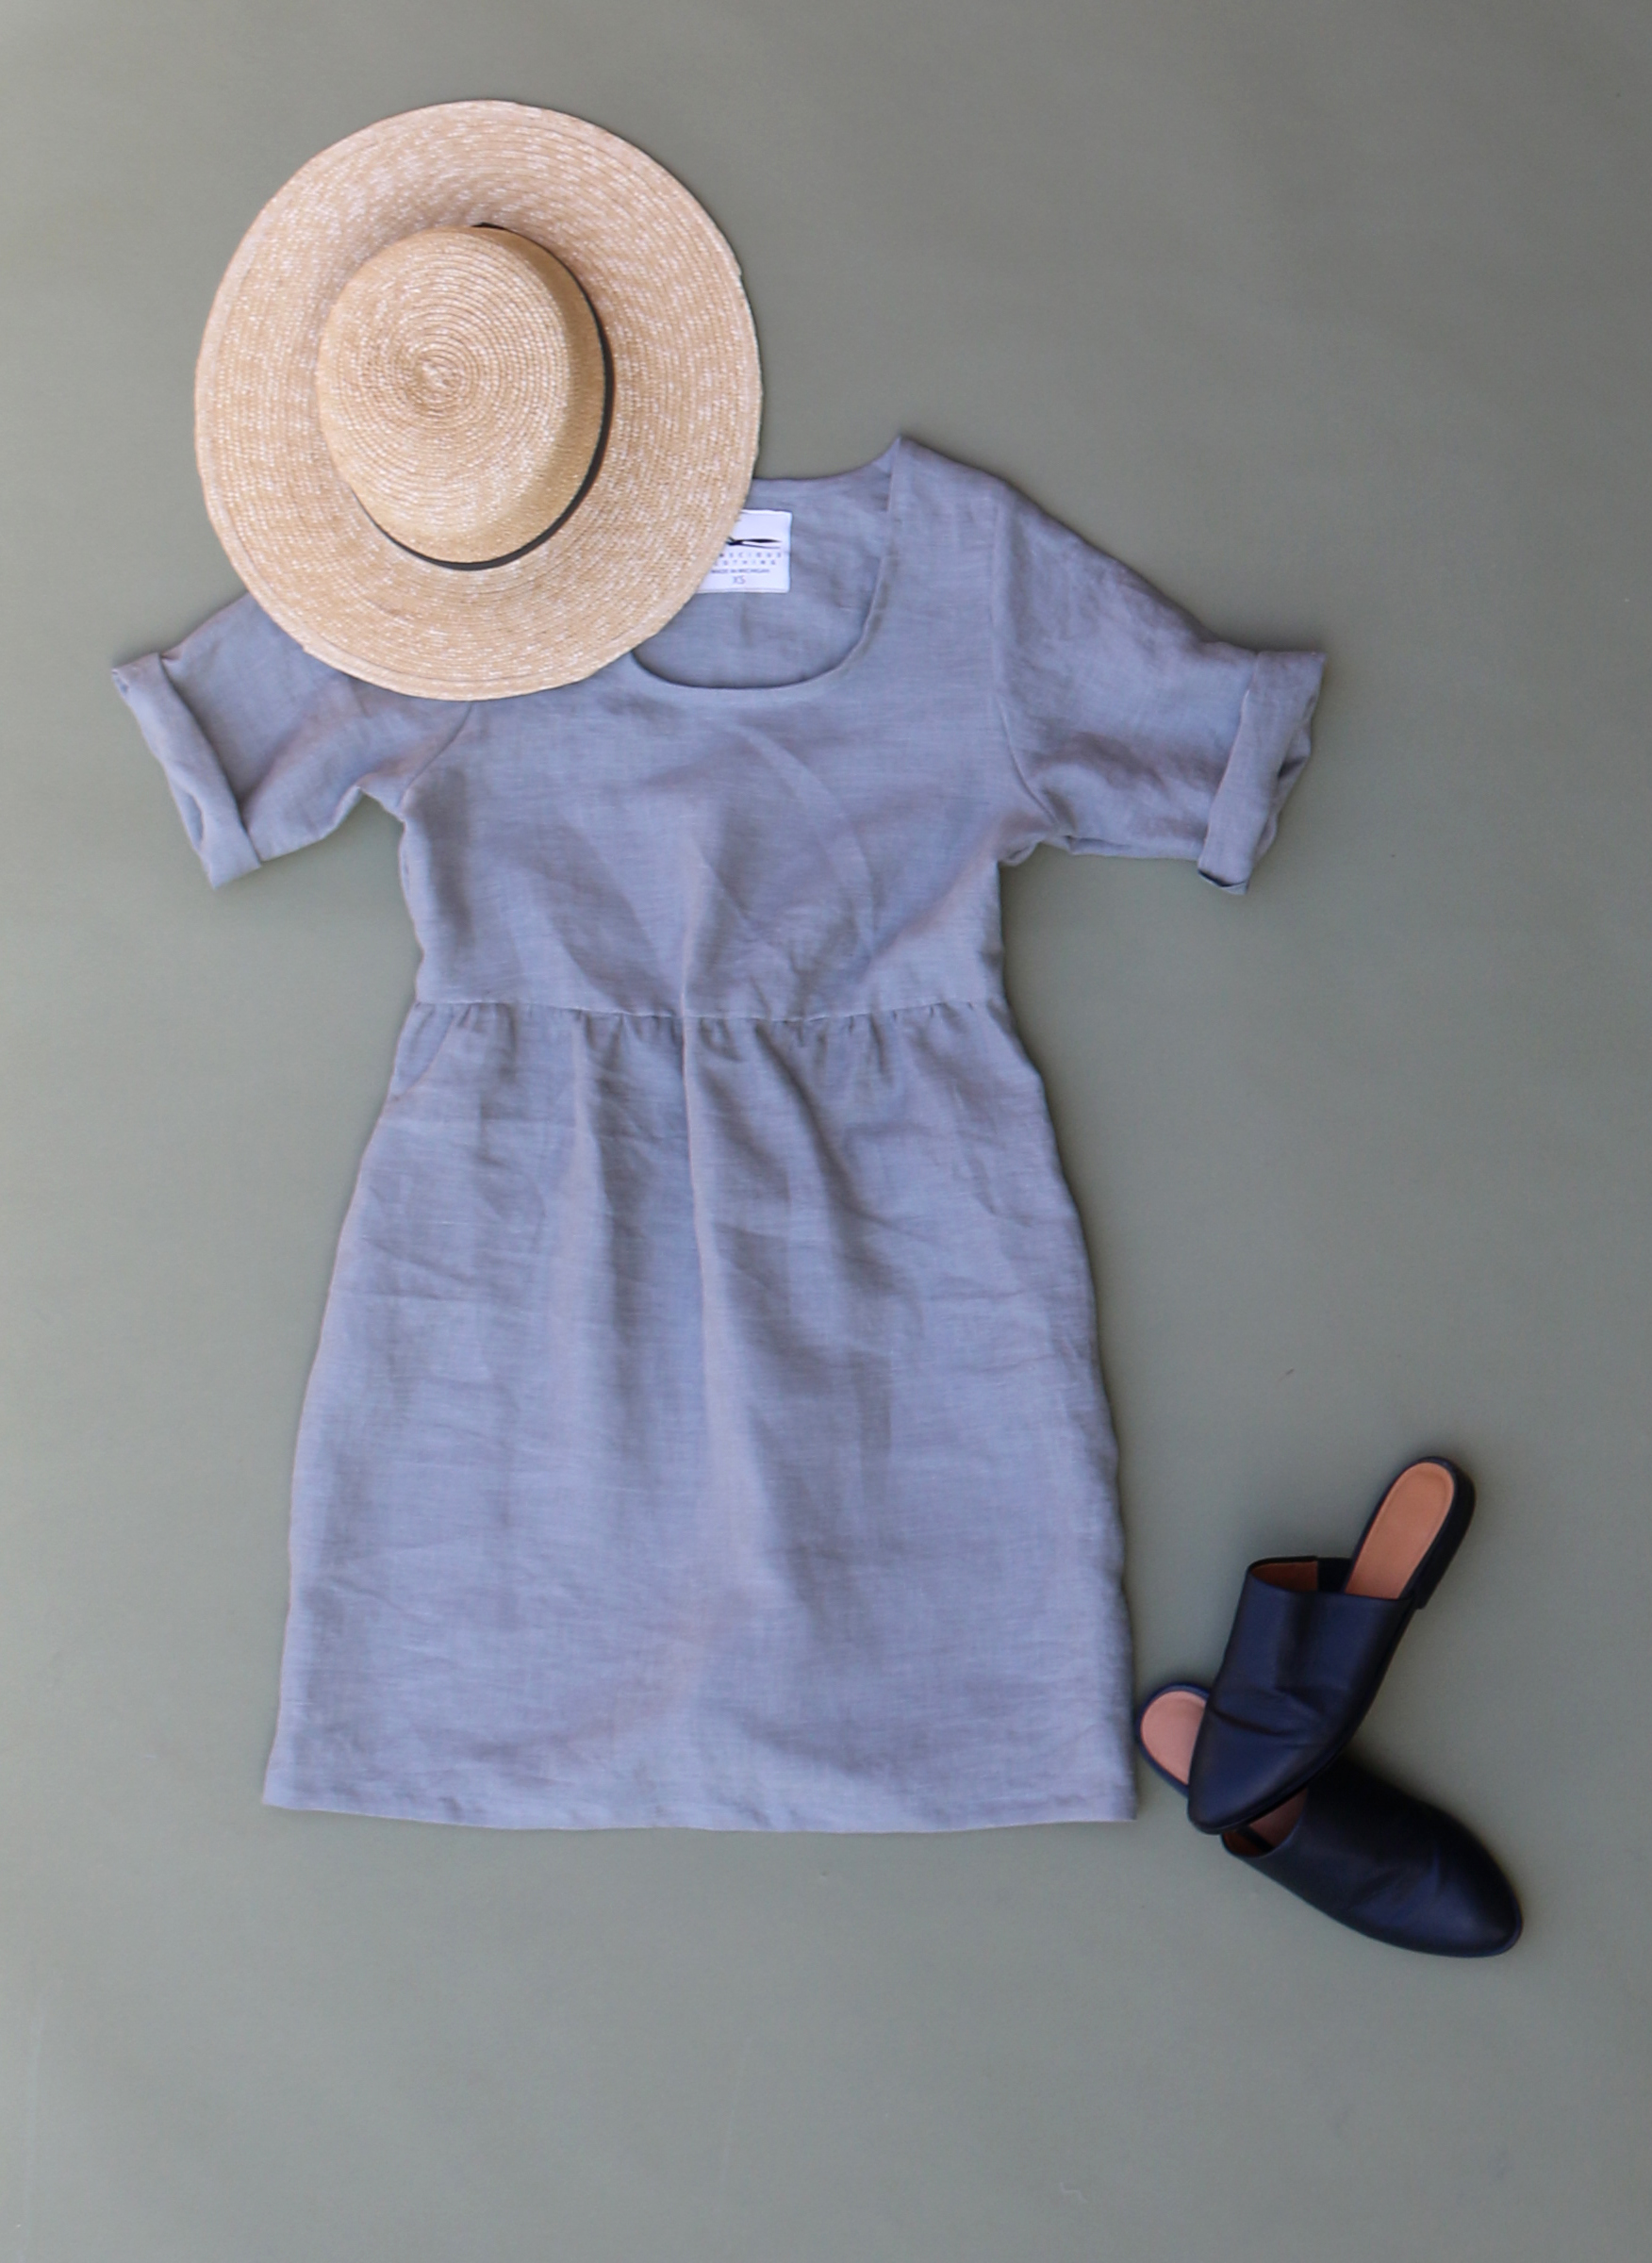 Backyard Tunic in Sage, styled with mules and a sunhat